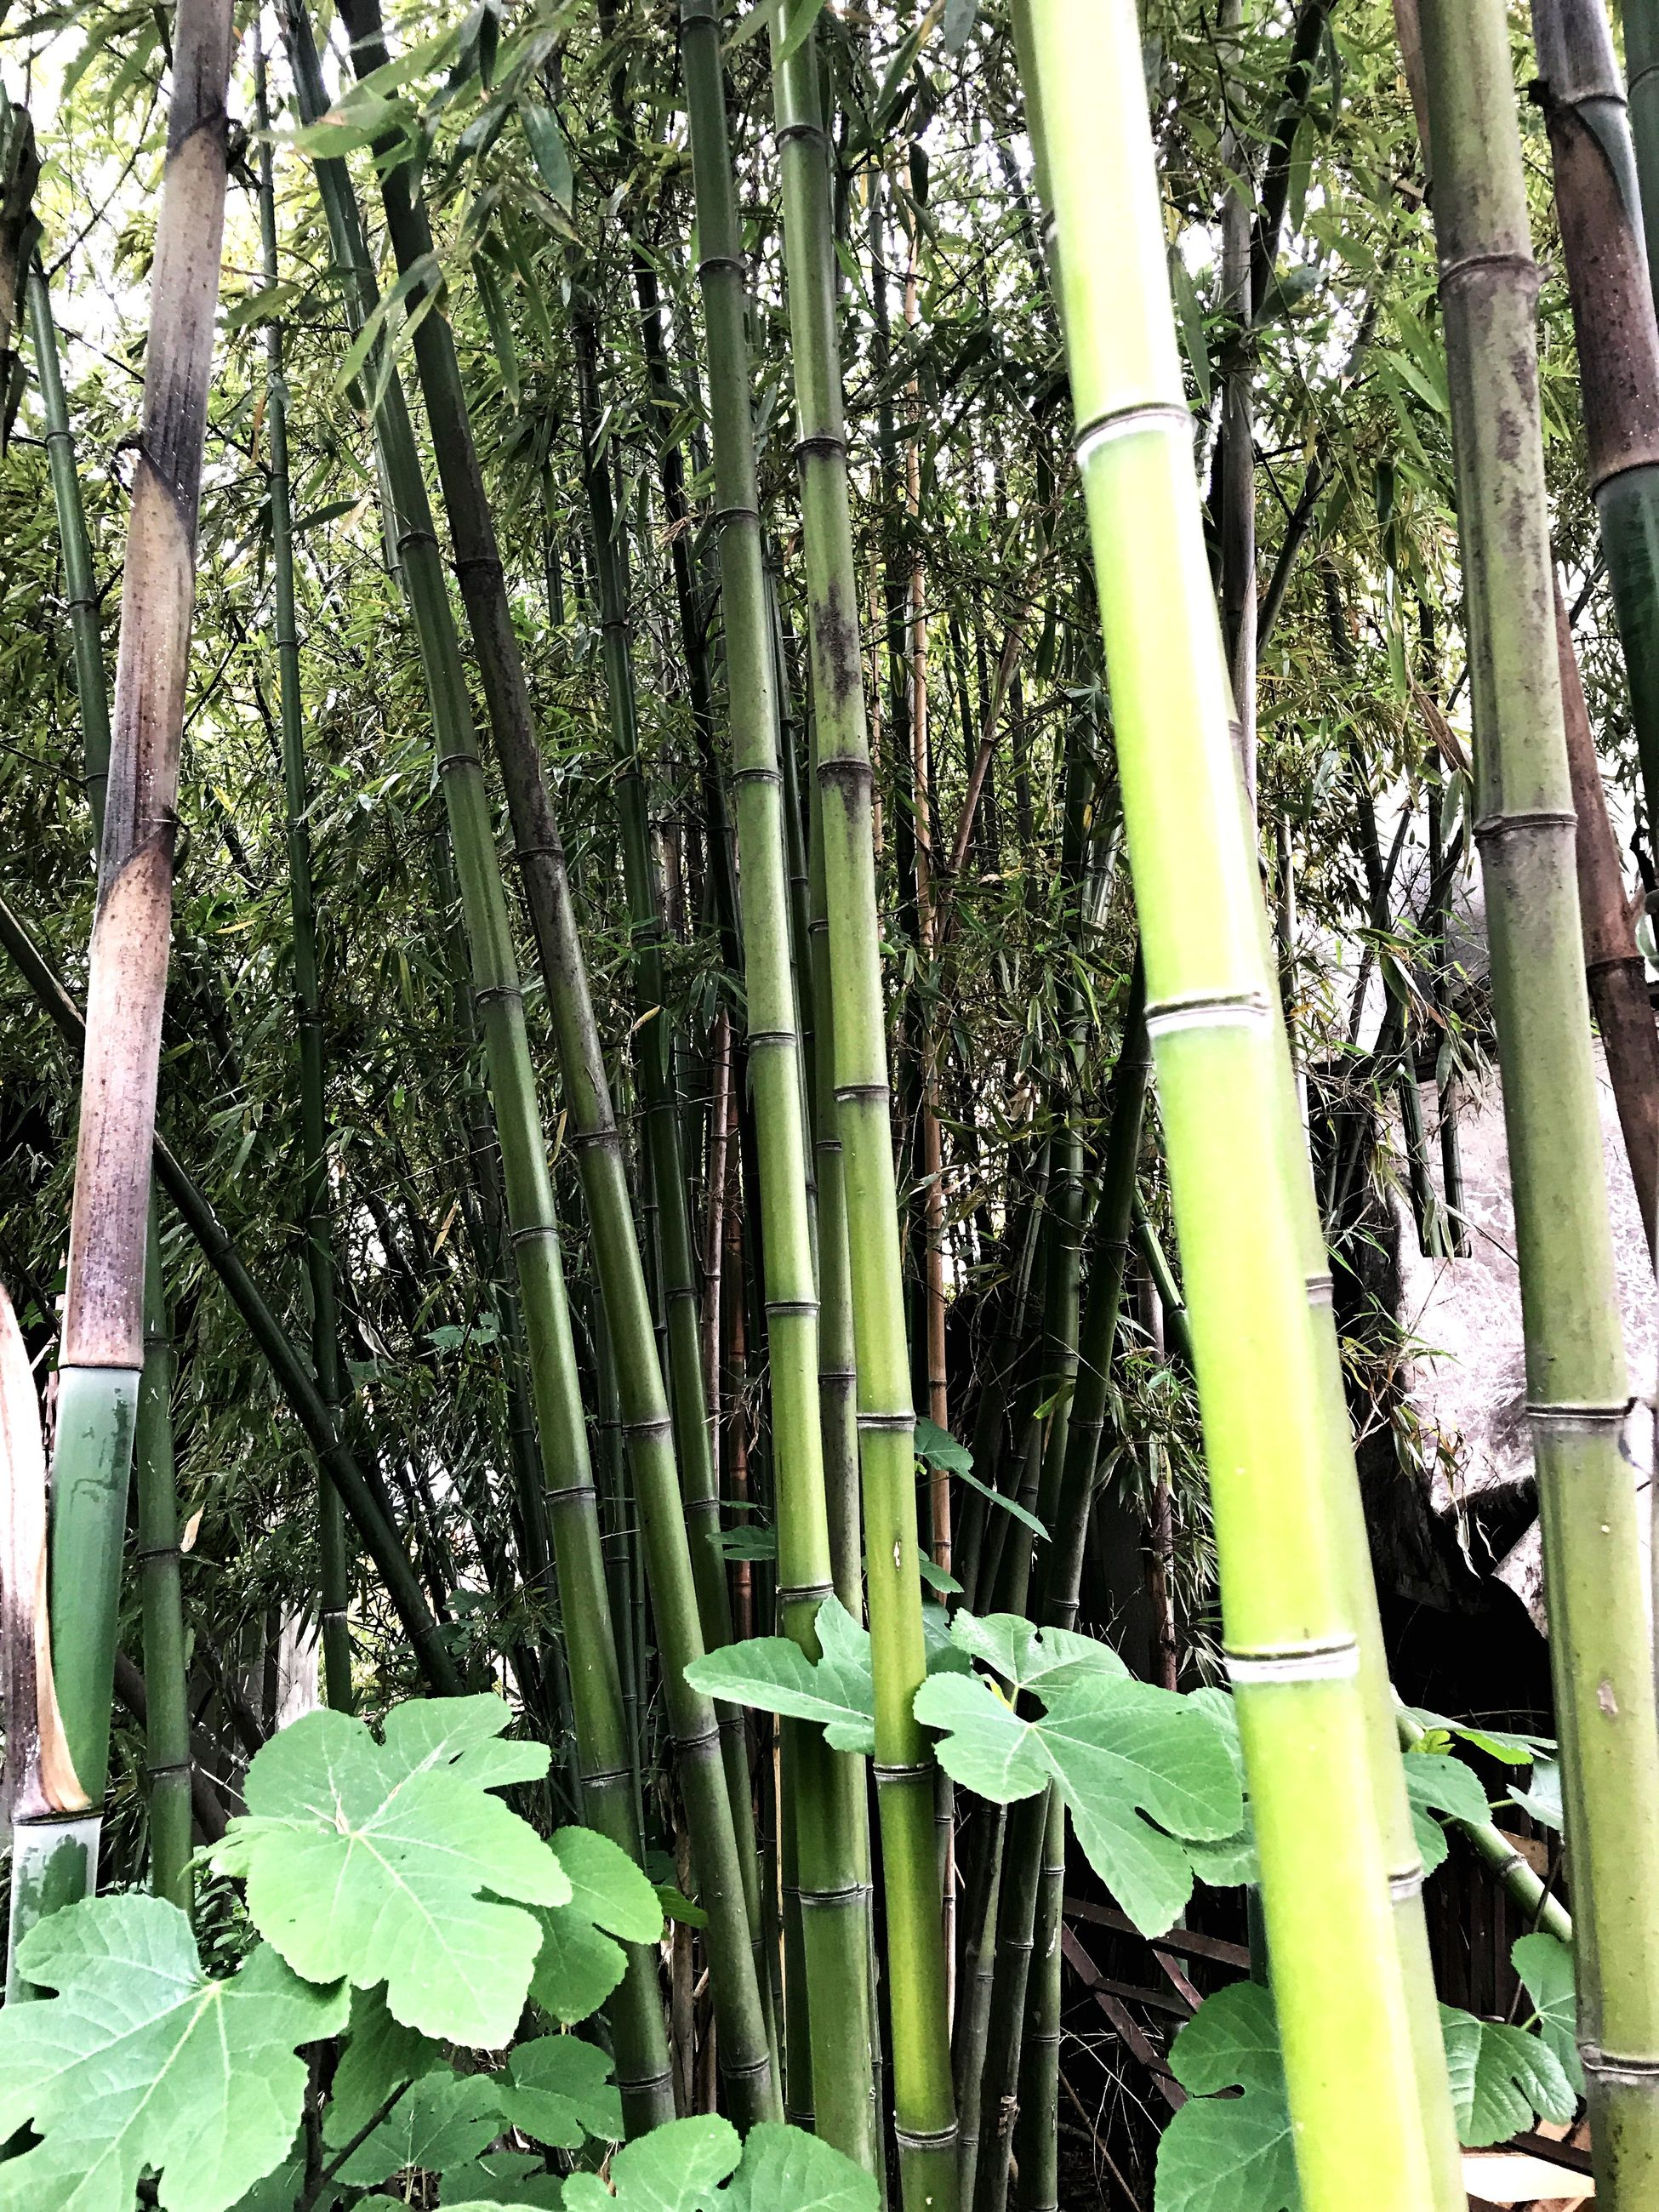 growth, bamboo - plant, green color, bamboo grove, nature, tree trunk, tree, outdoors, day, beauty in nature, no people, plant, tranquility, forest, close-up